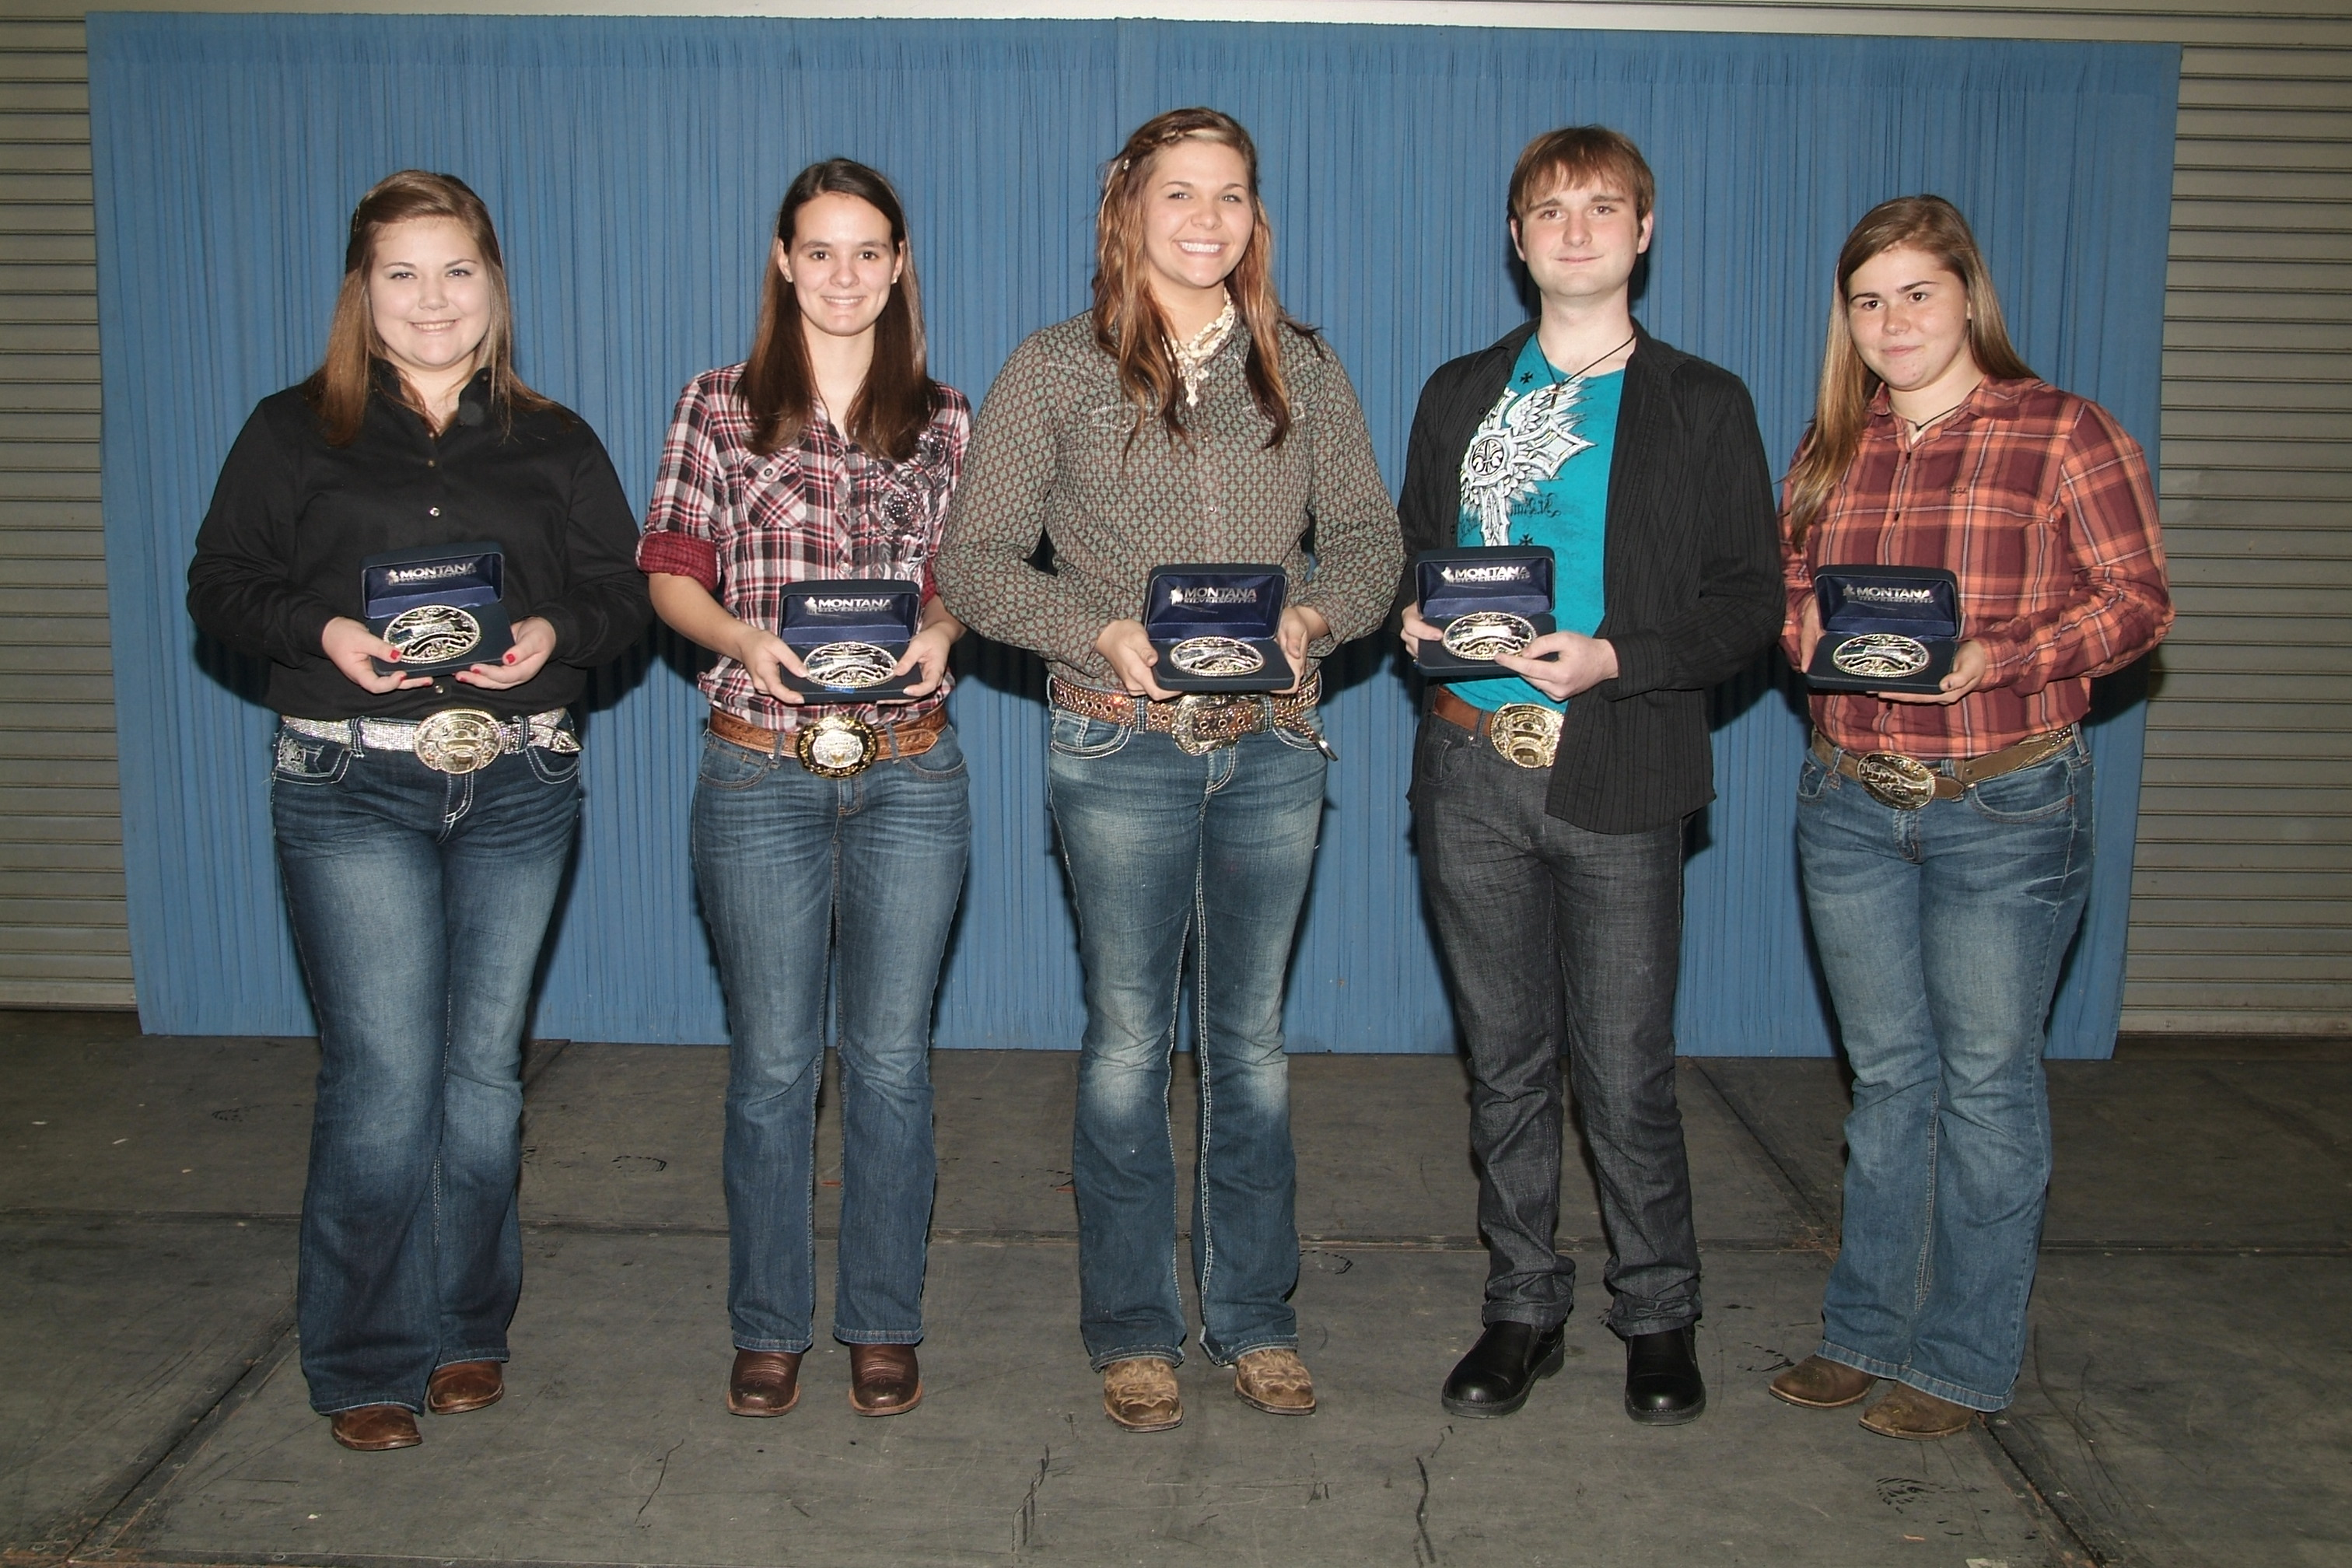 Youths earn Gerry Lane Premier Exhibitor Awards